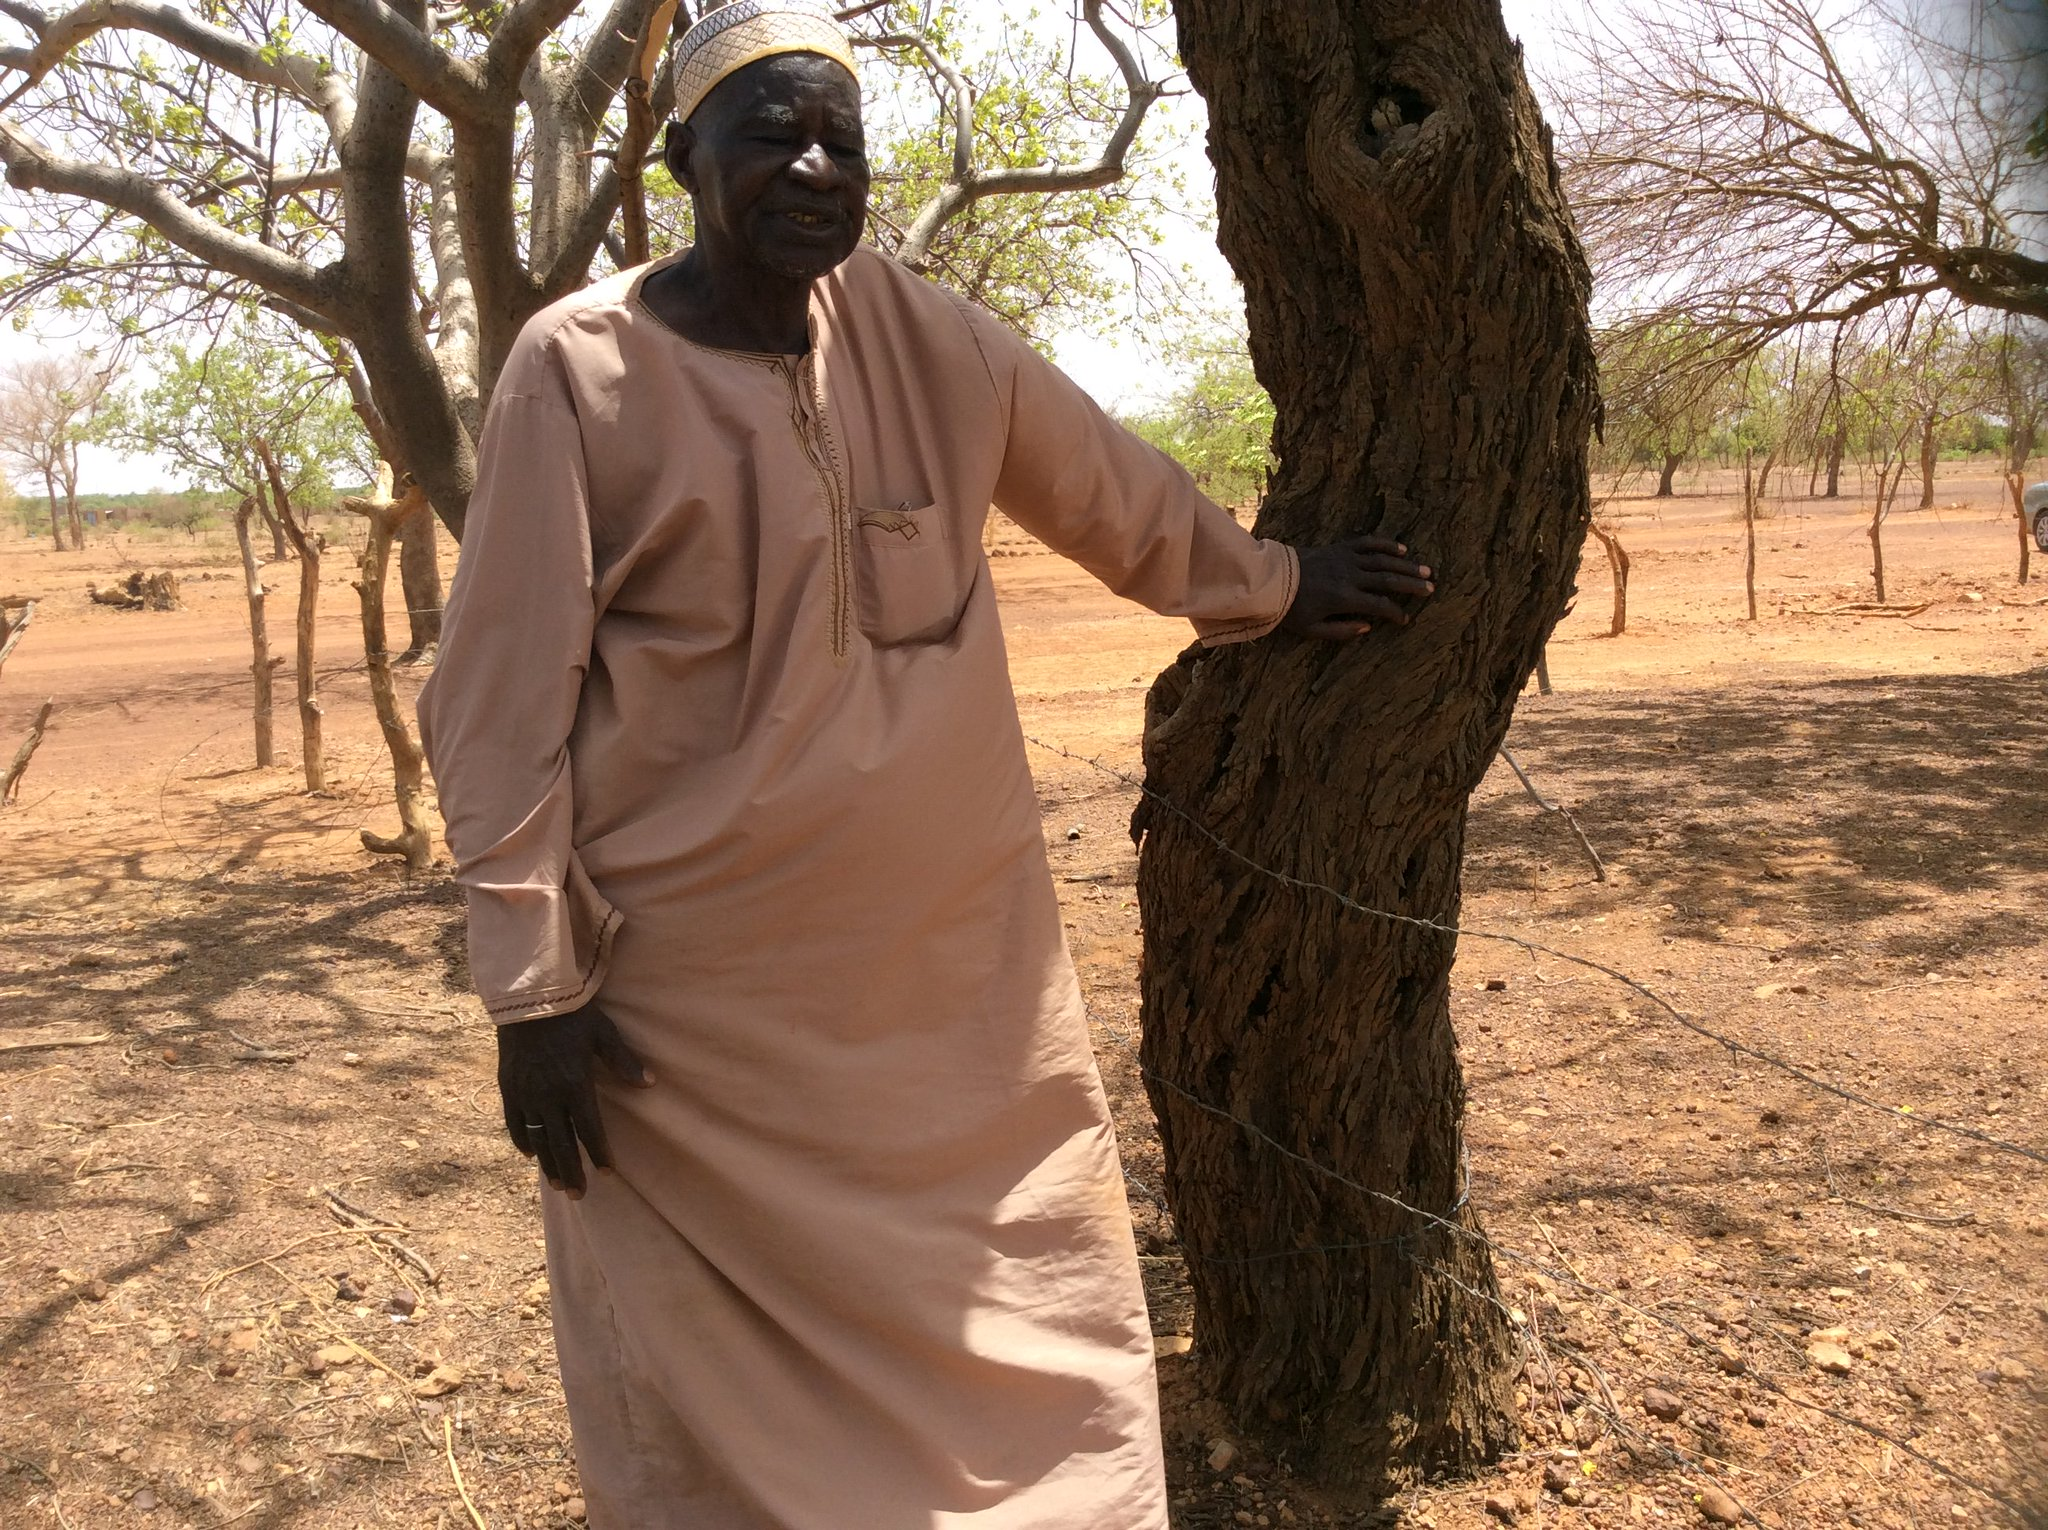 In #ImpactJournalism Day, the Burkinabe #farmer who fights #Desertification w/ #termites #StoryOfChange #agriculture https://t.co/VWnfVVmeb1 https://t.co/w1ou4GymEE